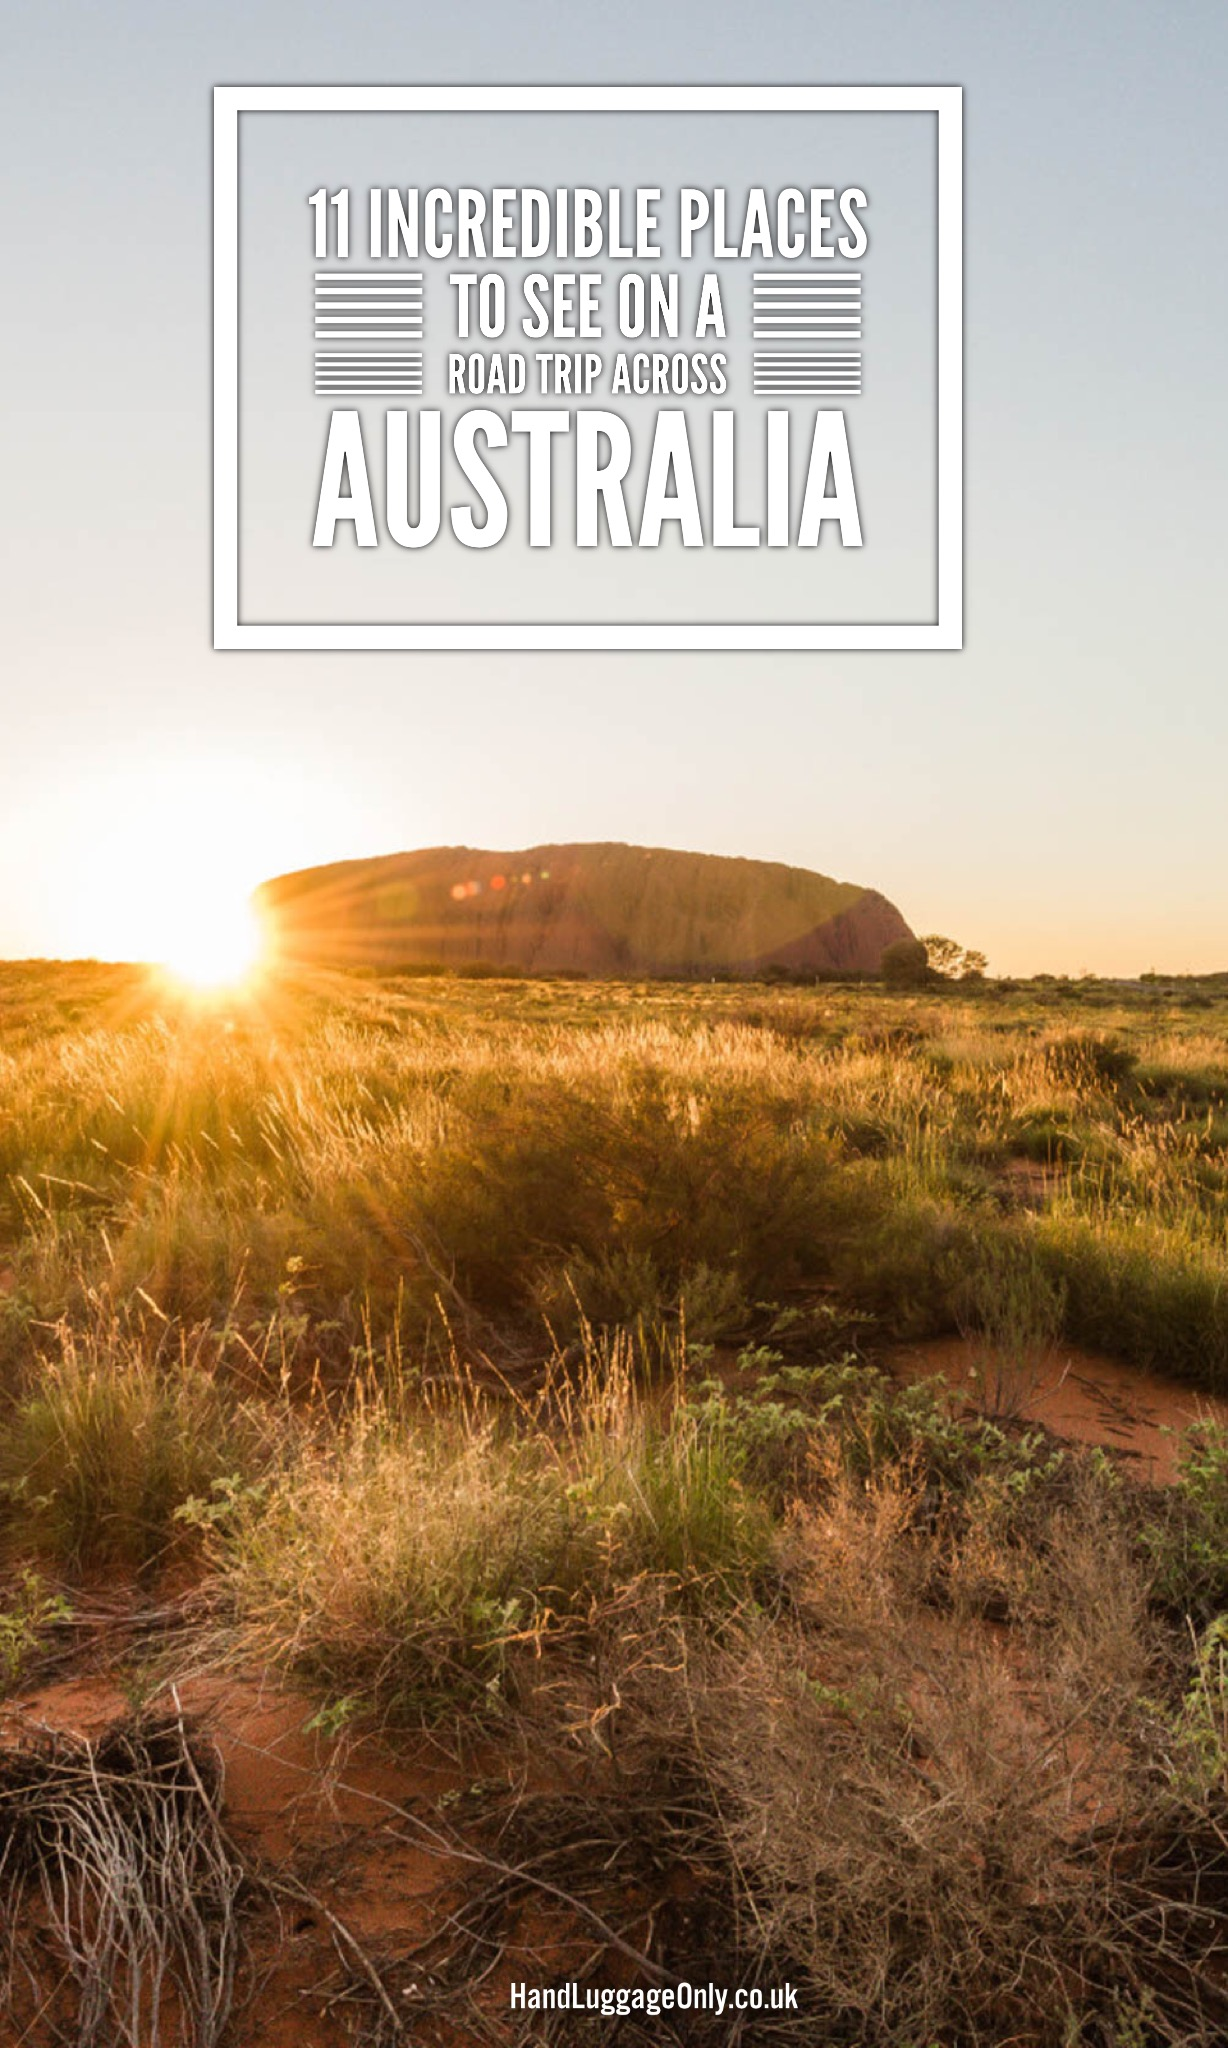 11 Incredible Places You Must Visit On Your Road Trip Across Australia (1)